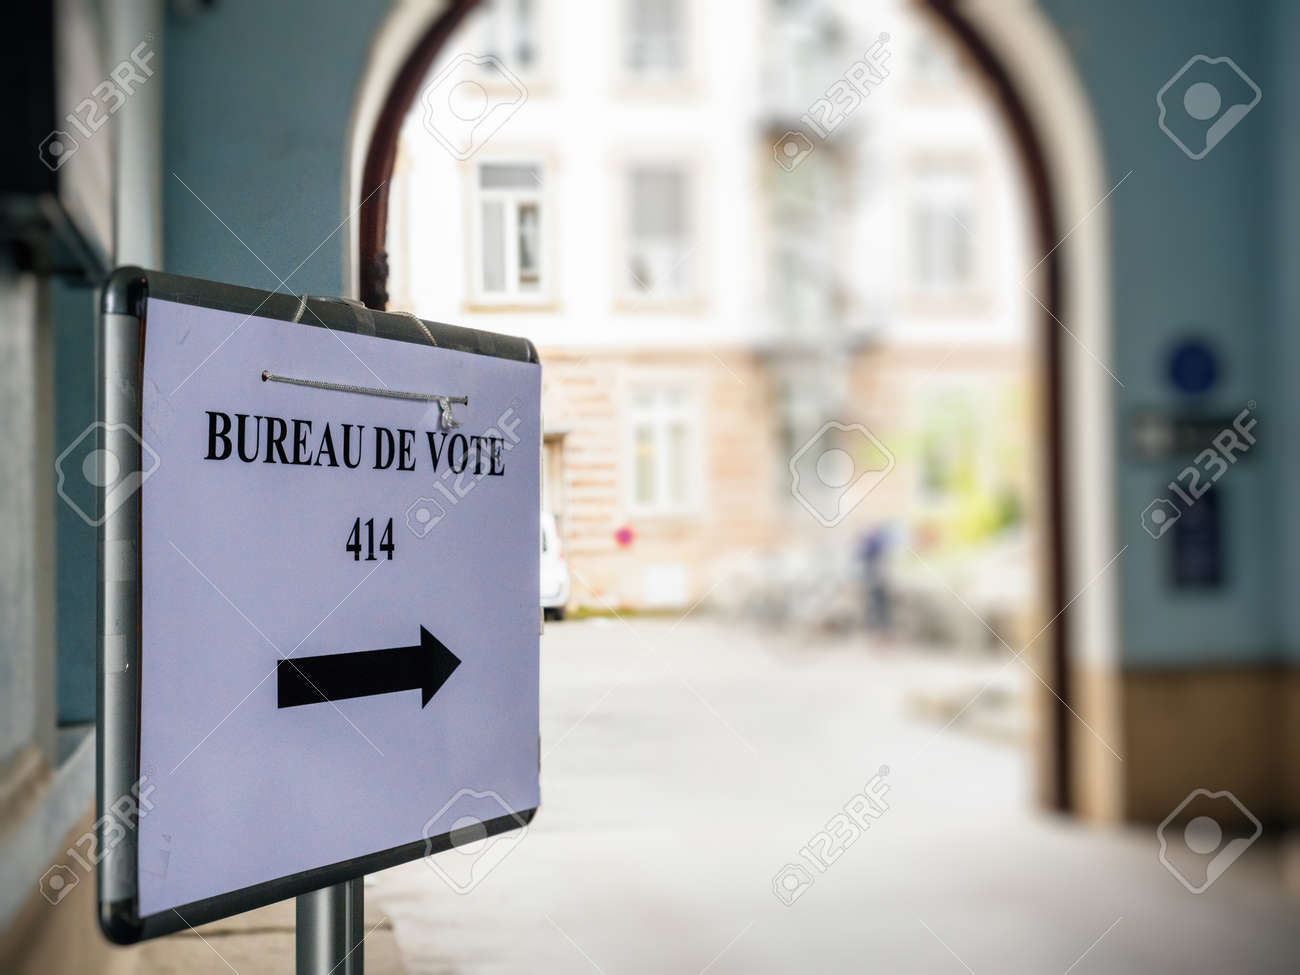 Strasbourg france may bureau de vote sign in french